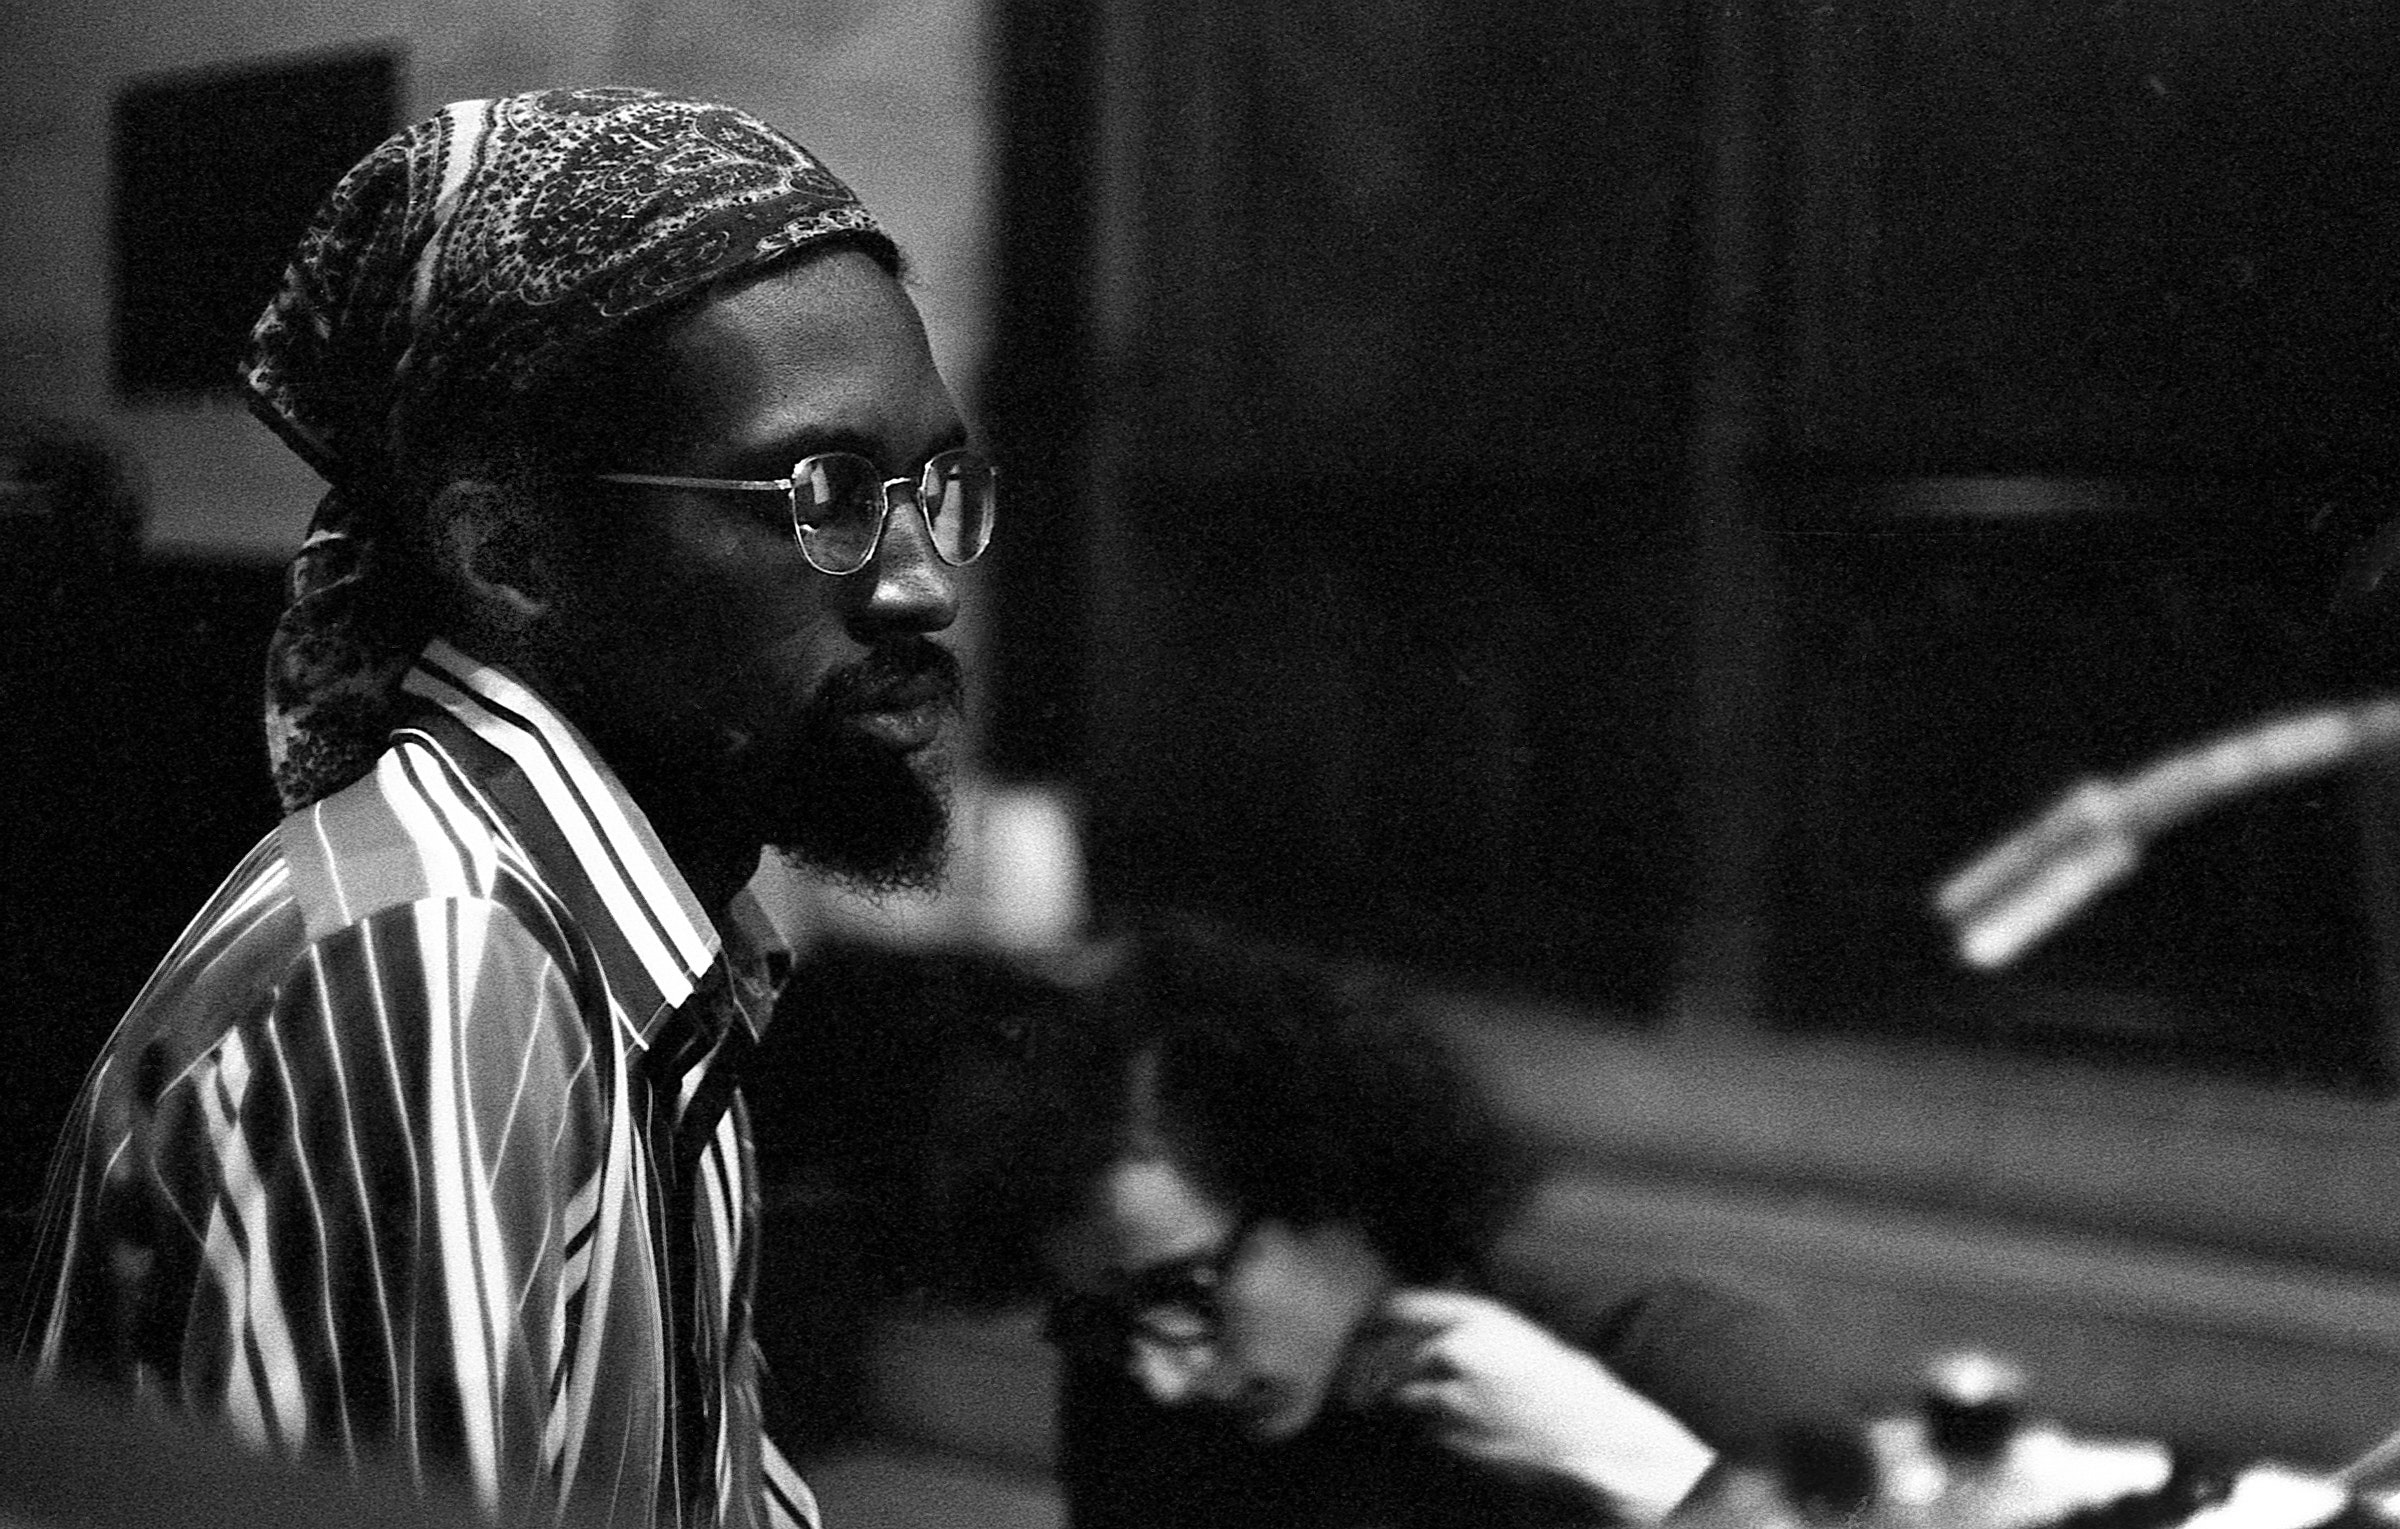 Portrait of Julius Eastman sitting at a piano